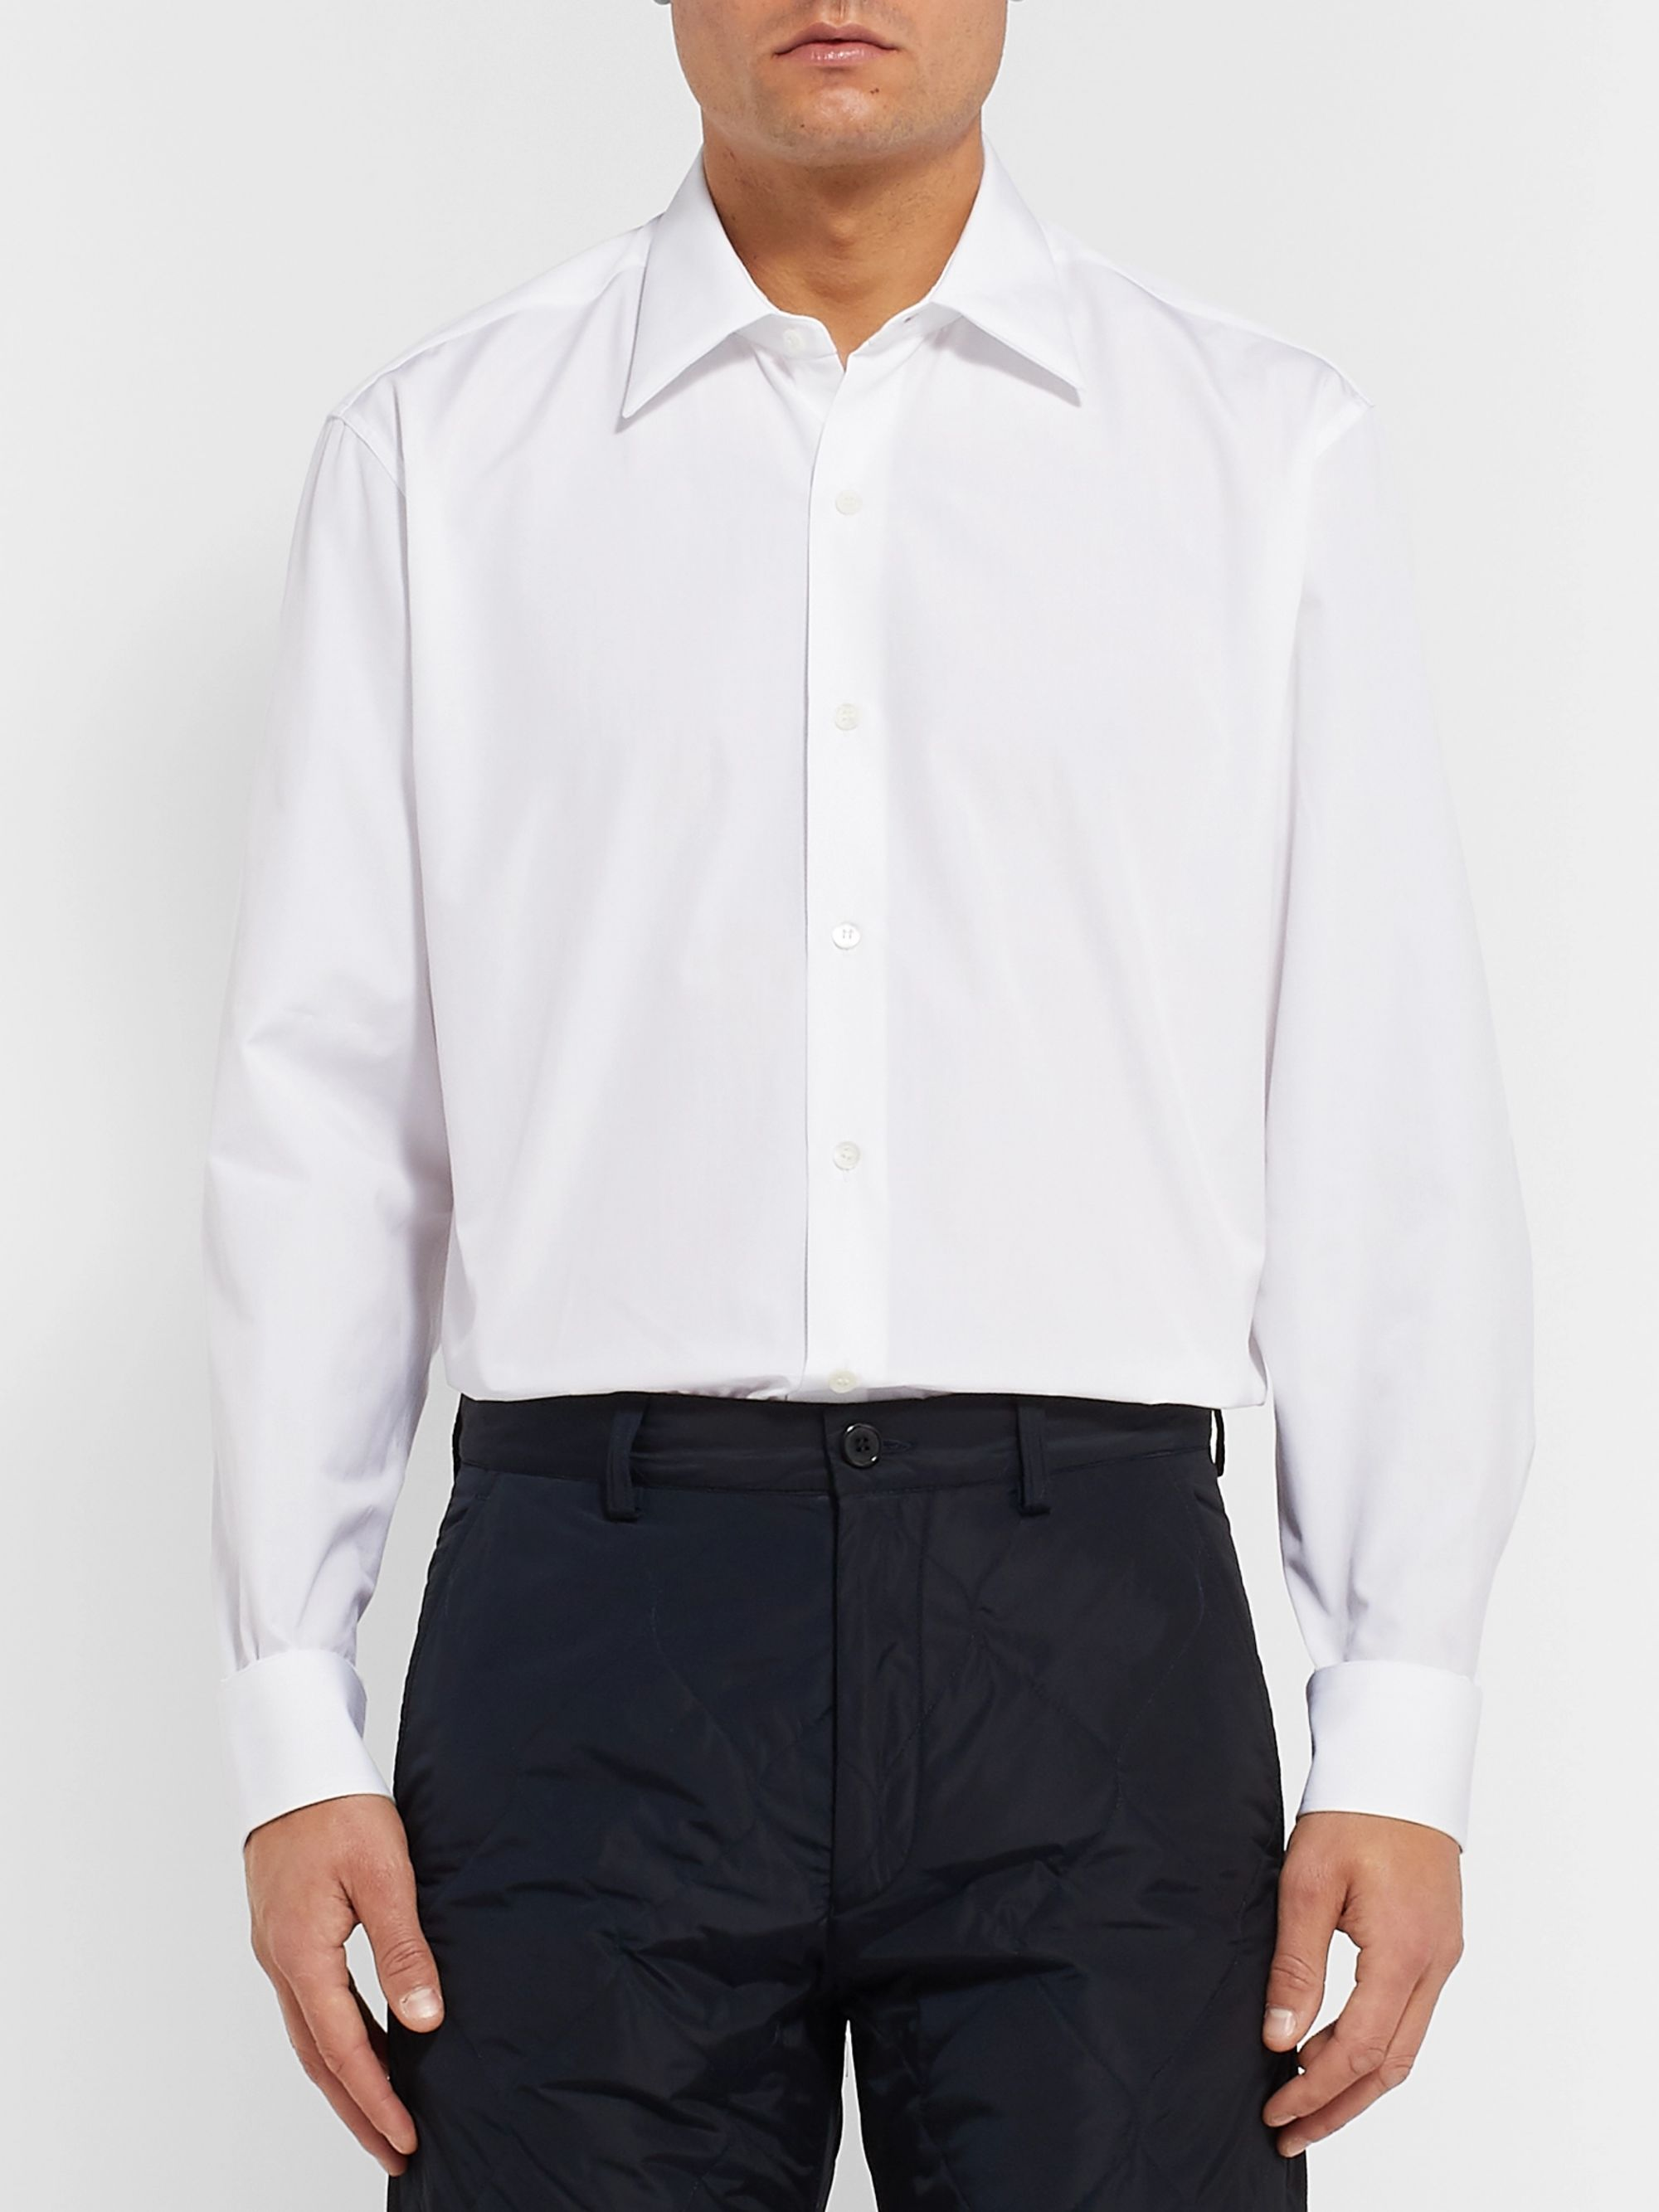 Dries Van Noten White Cleaver Cotton-Poplin Shirt